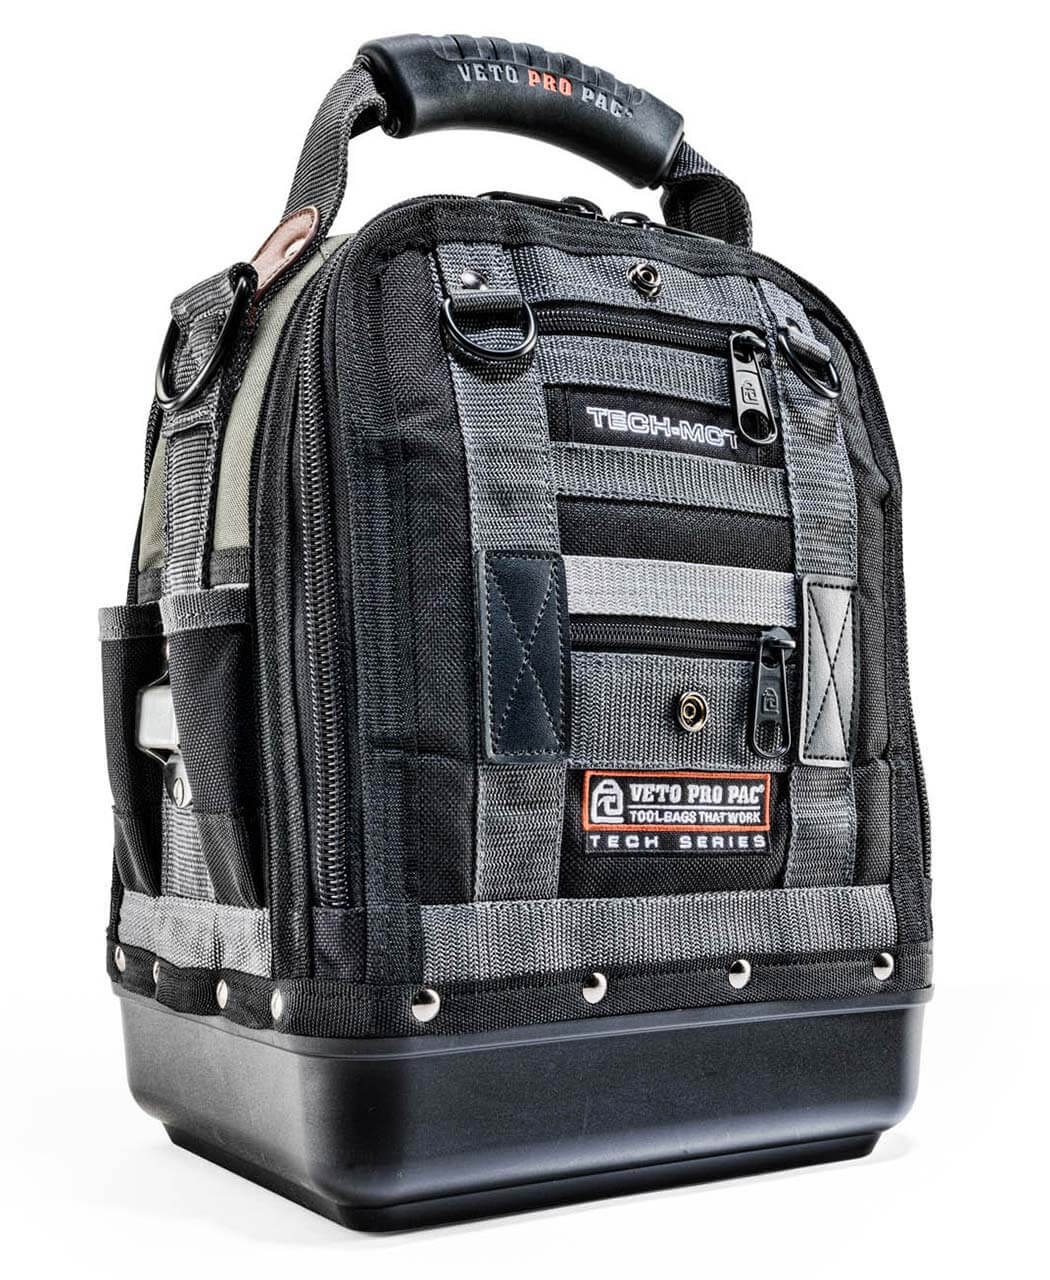 Veto Pro Pac Tech MCT Tool Bag for Tools and Meters